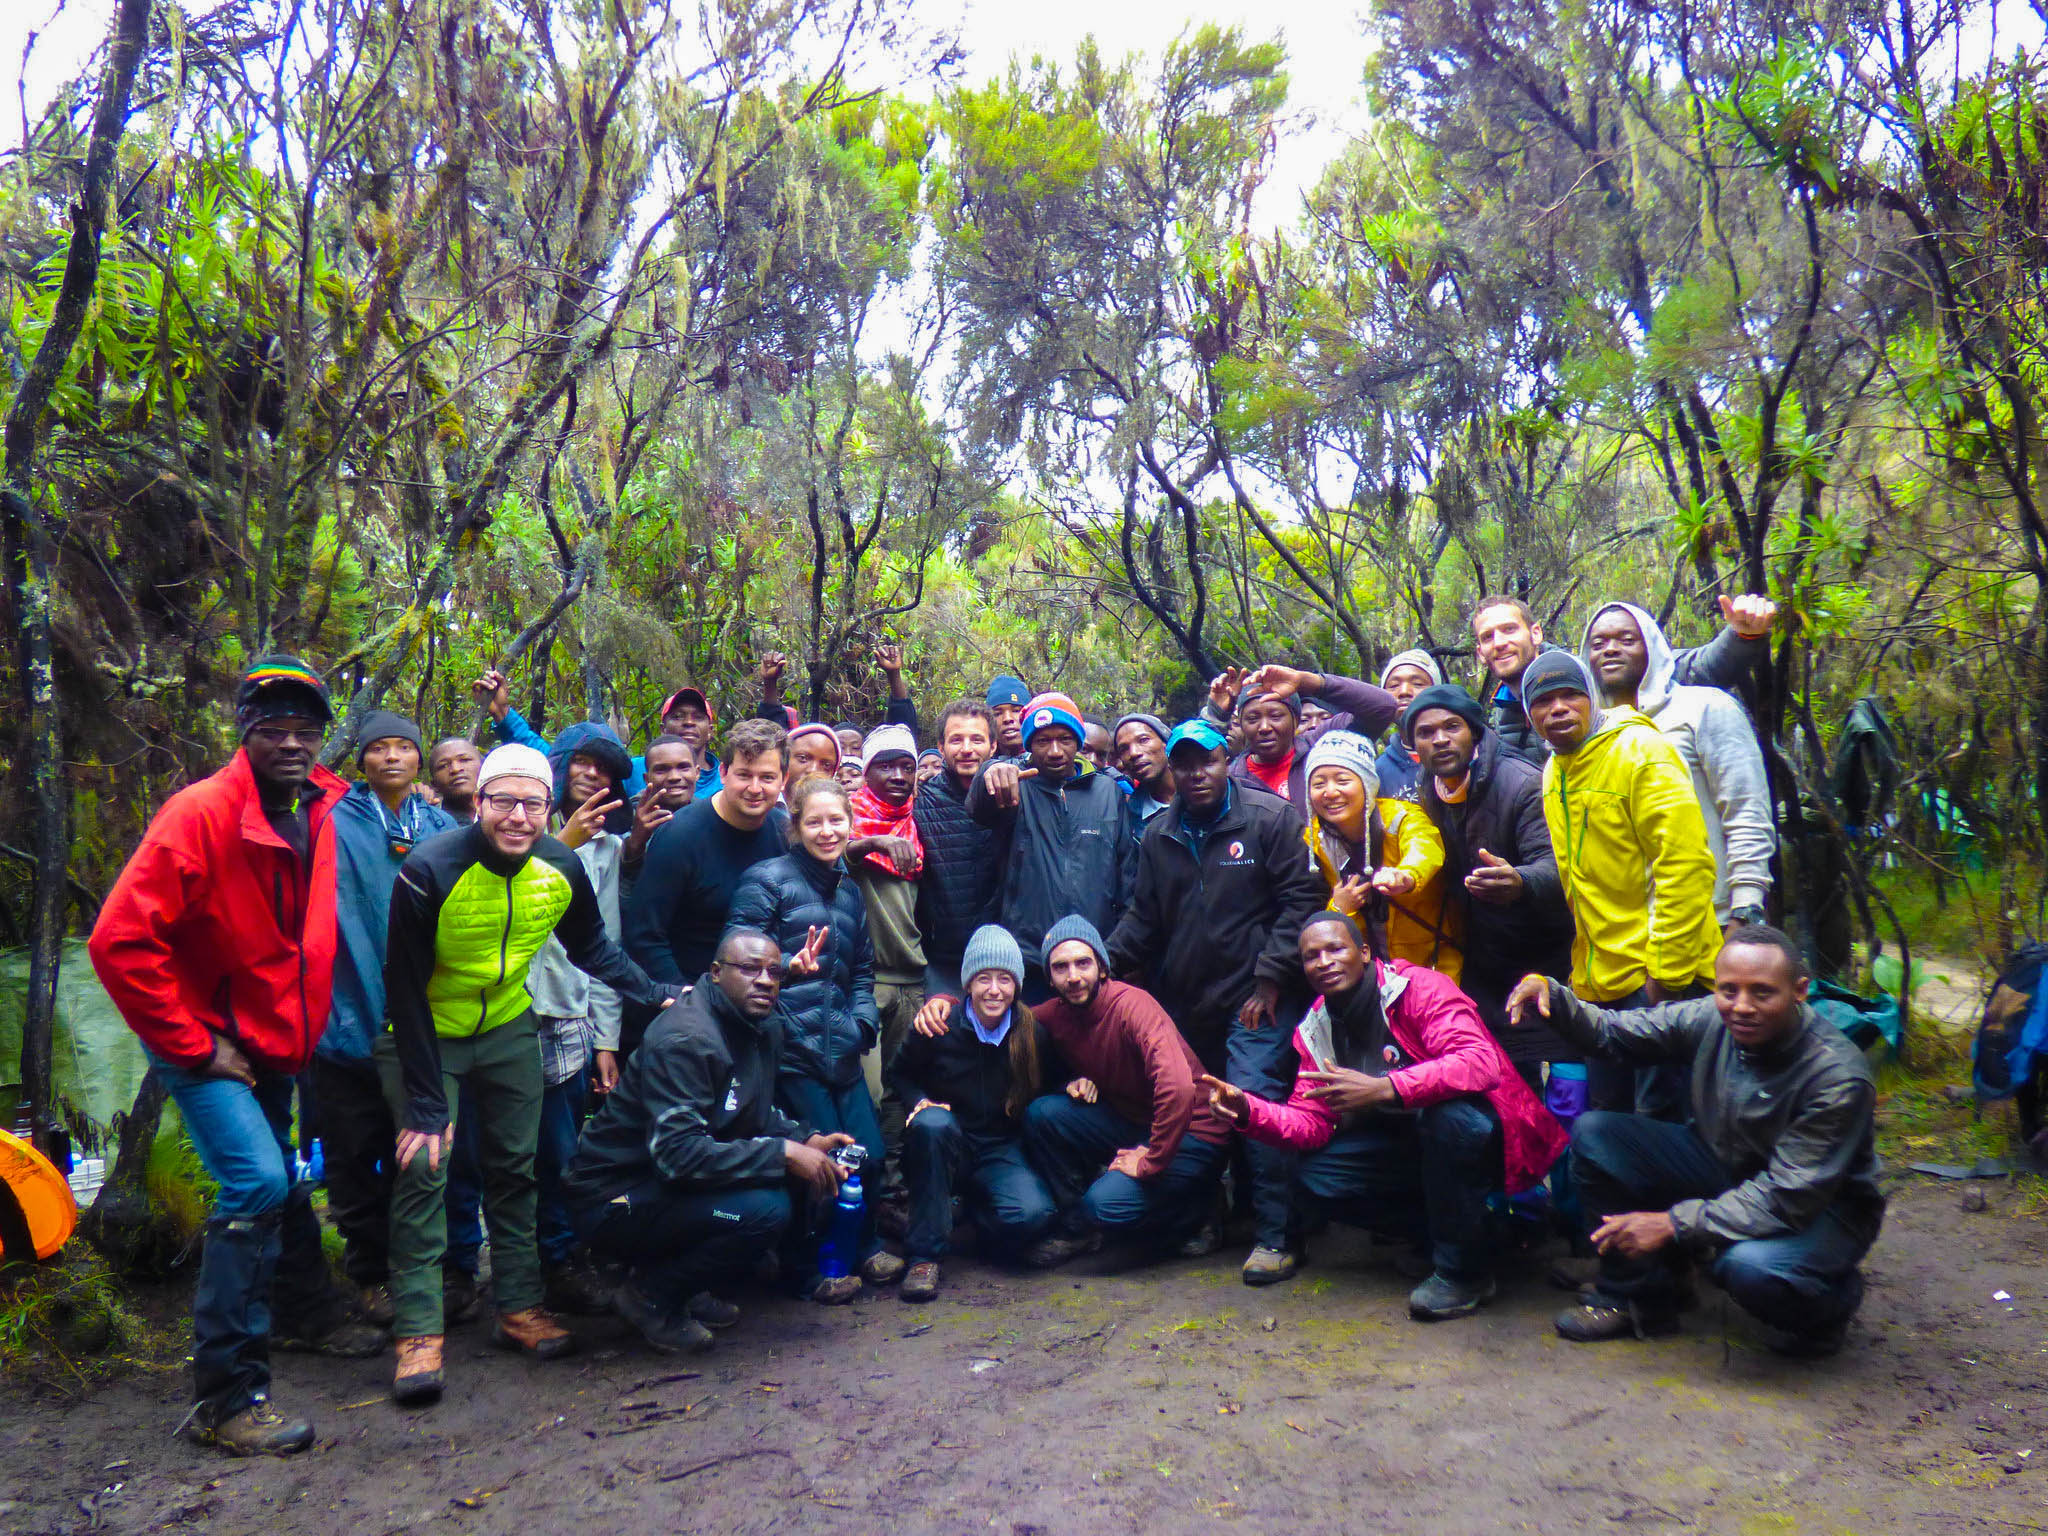 Follow Alice Kilimanjaro climbers and crew all together at Tipping on Kilimanjaro